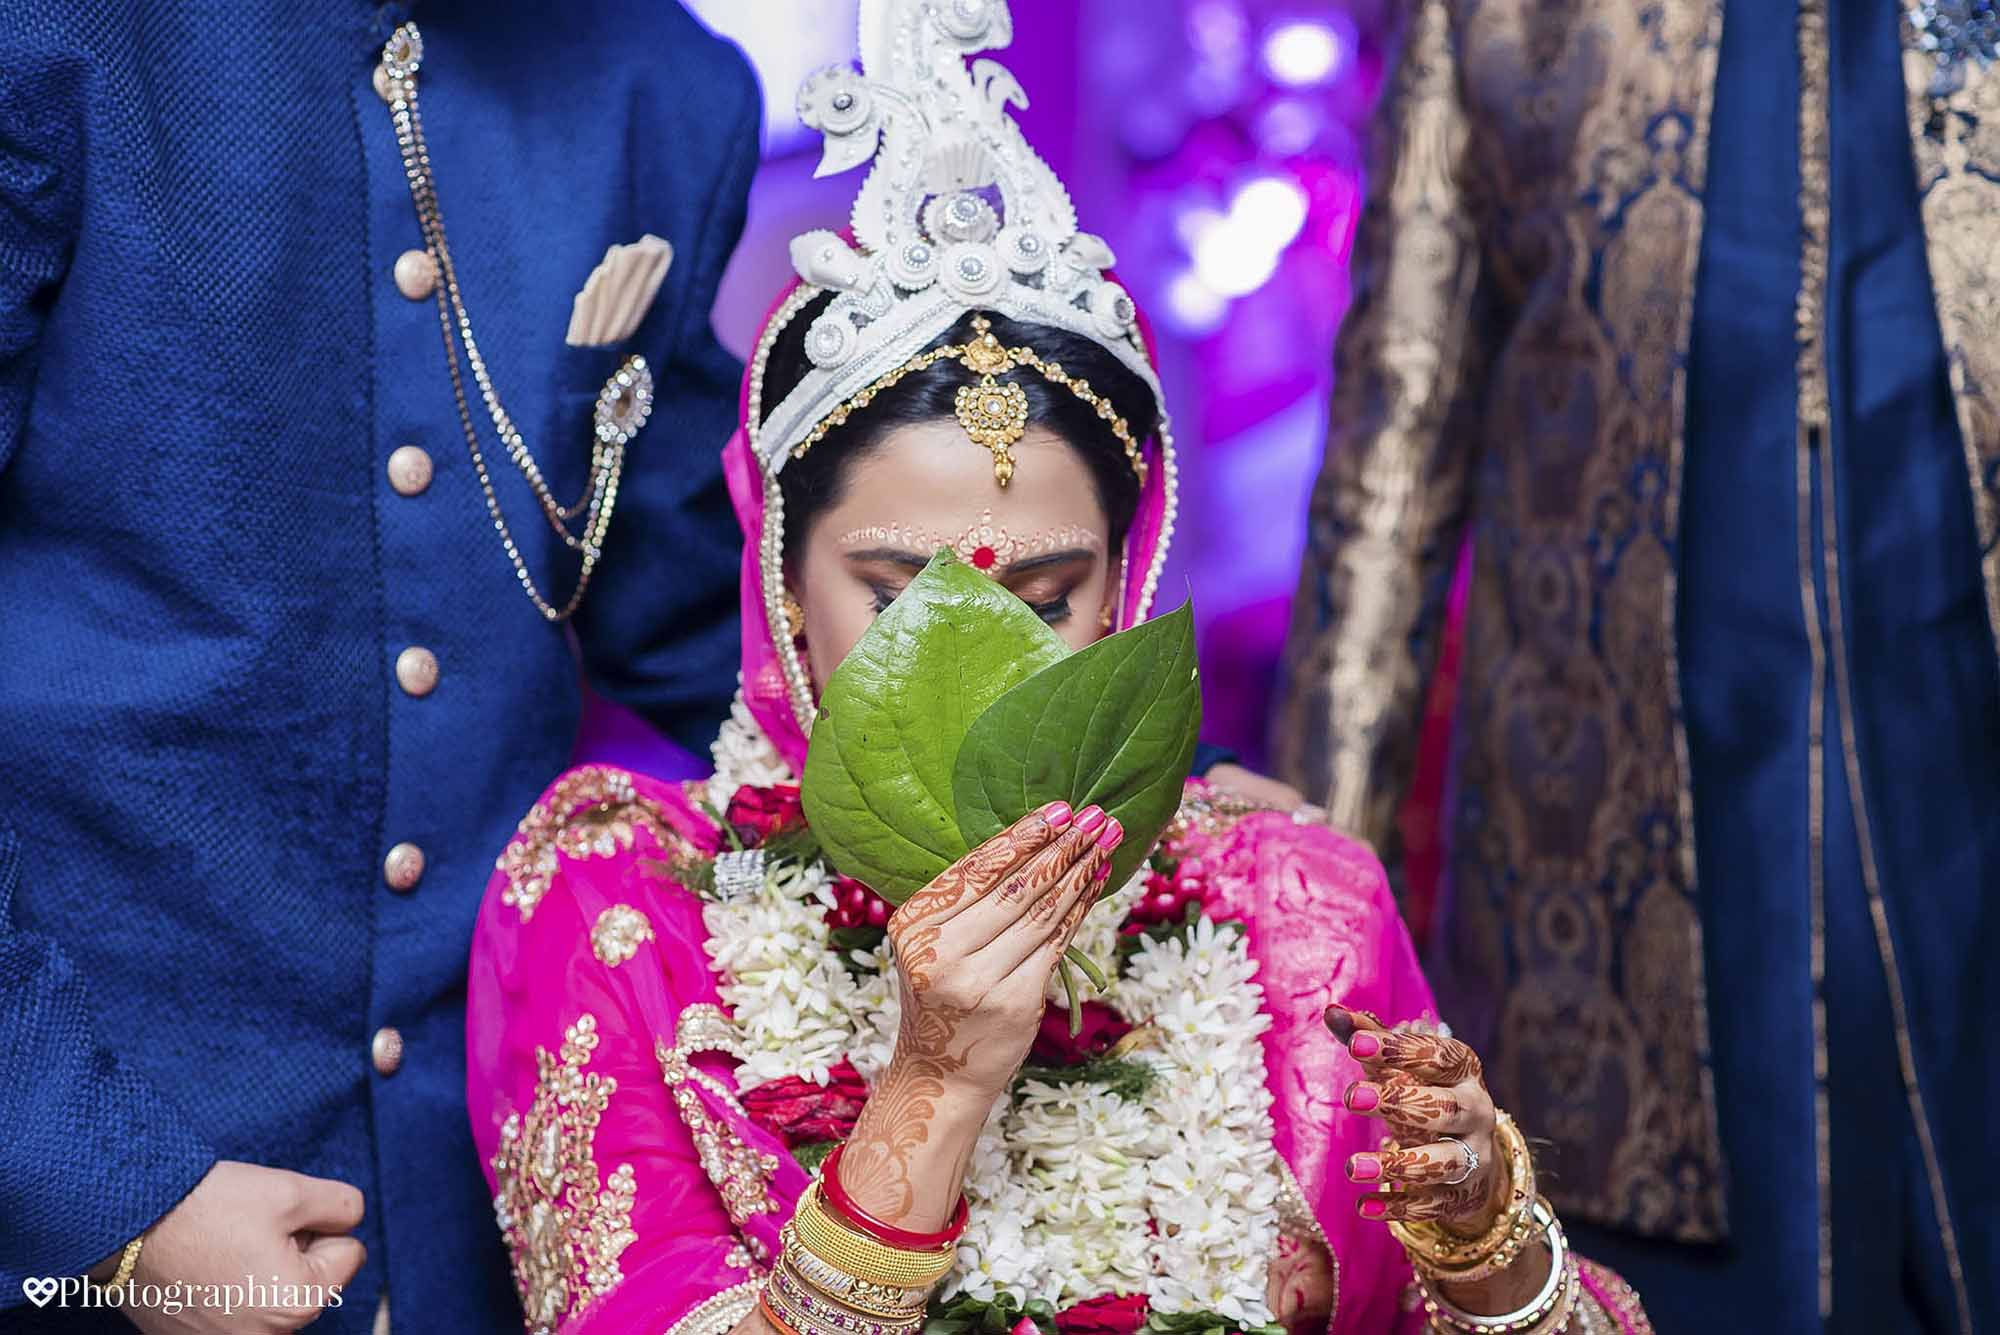 Bengali_Wedding_Photography_Kolkata_Photographians_174